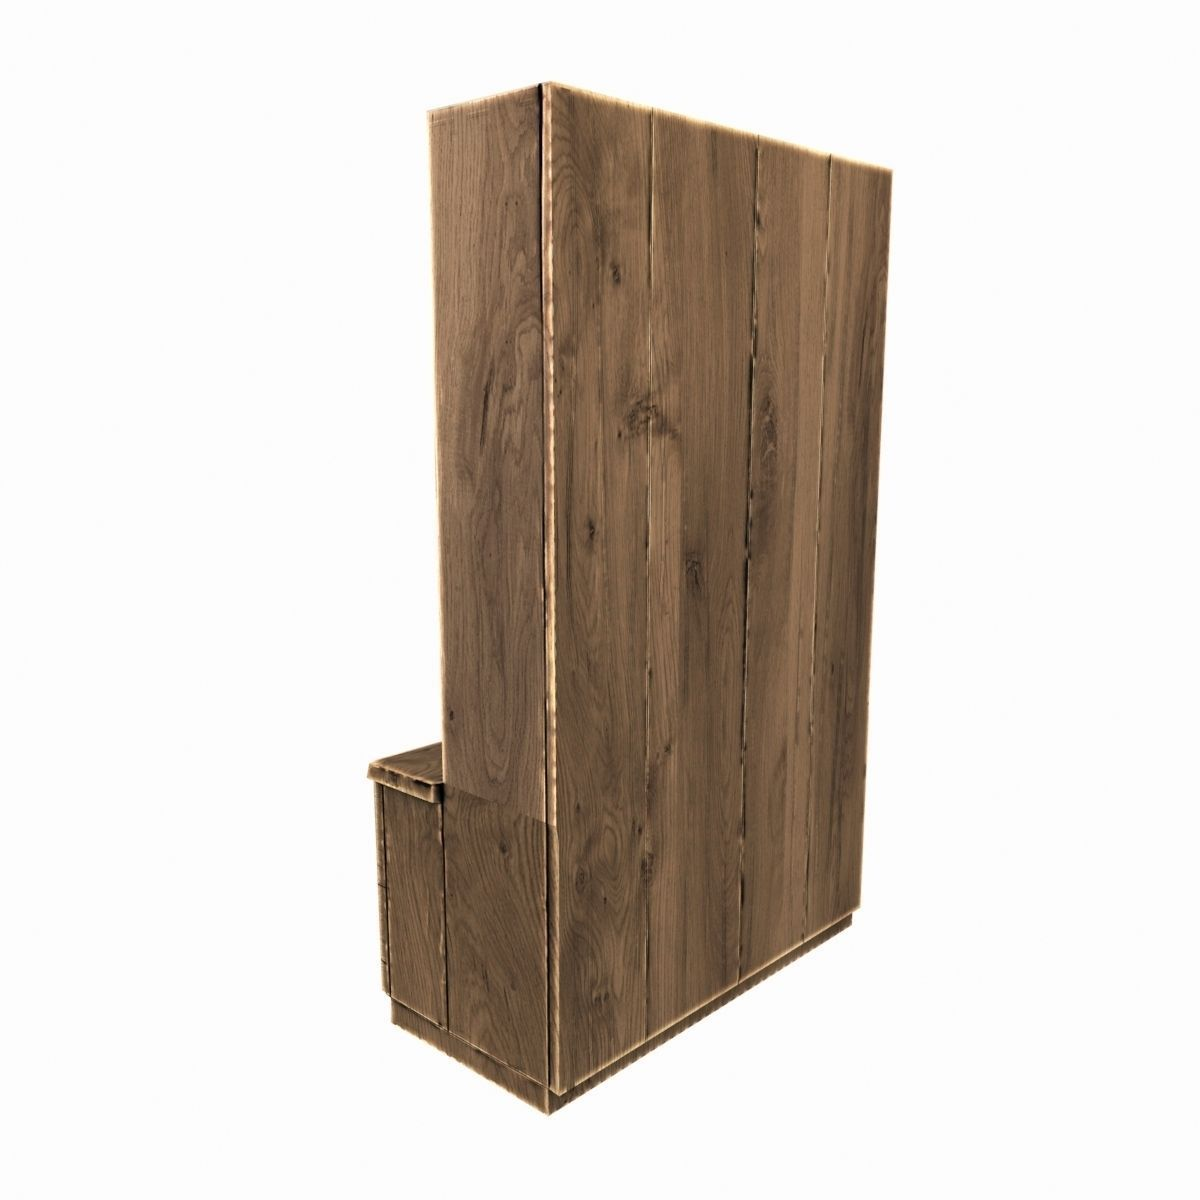 old wooden cupboard 3d model cgtrader